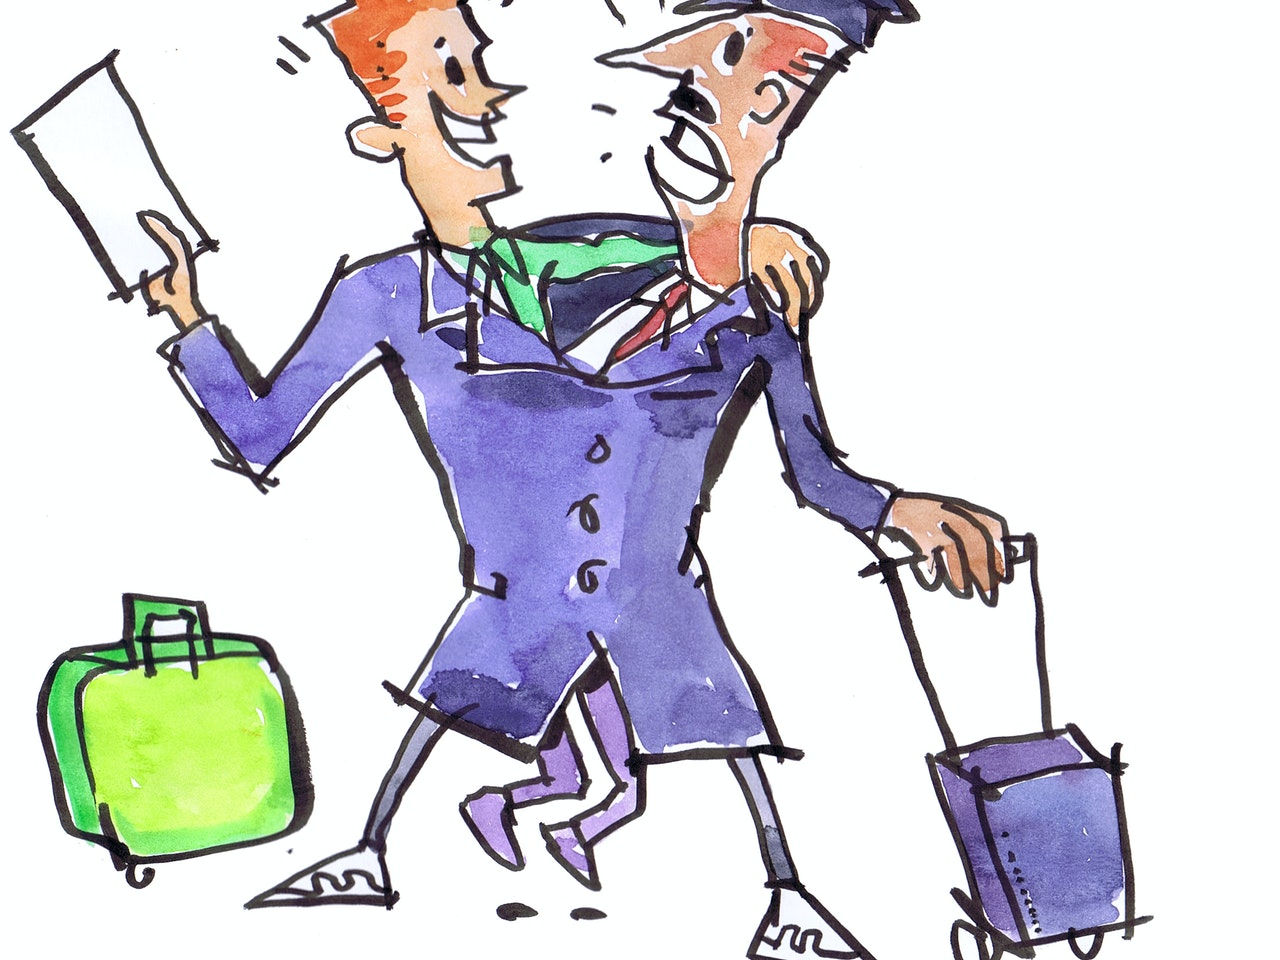 pilot airplane air travel ticket holiday captain watercolour painting pen and ink coloured pencil Book cover childrens illustration animation funny  humorous comical colourful graphic novel comic strip cartoon comic book educational publishing comedy cringe joker